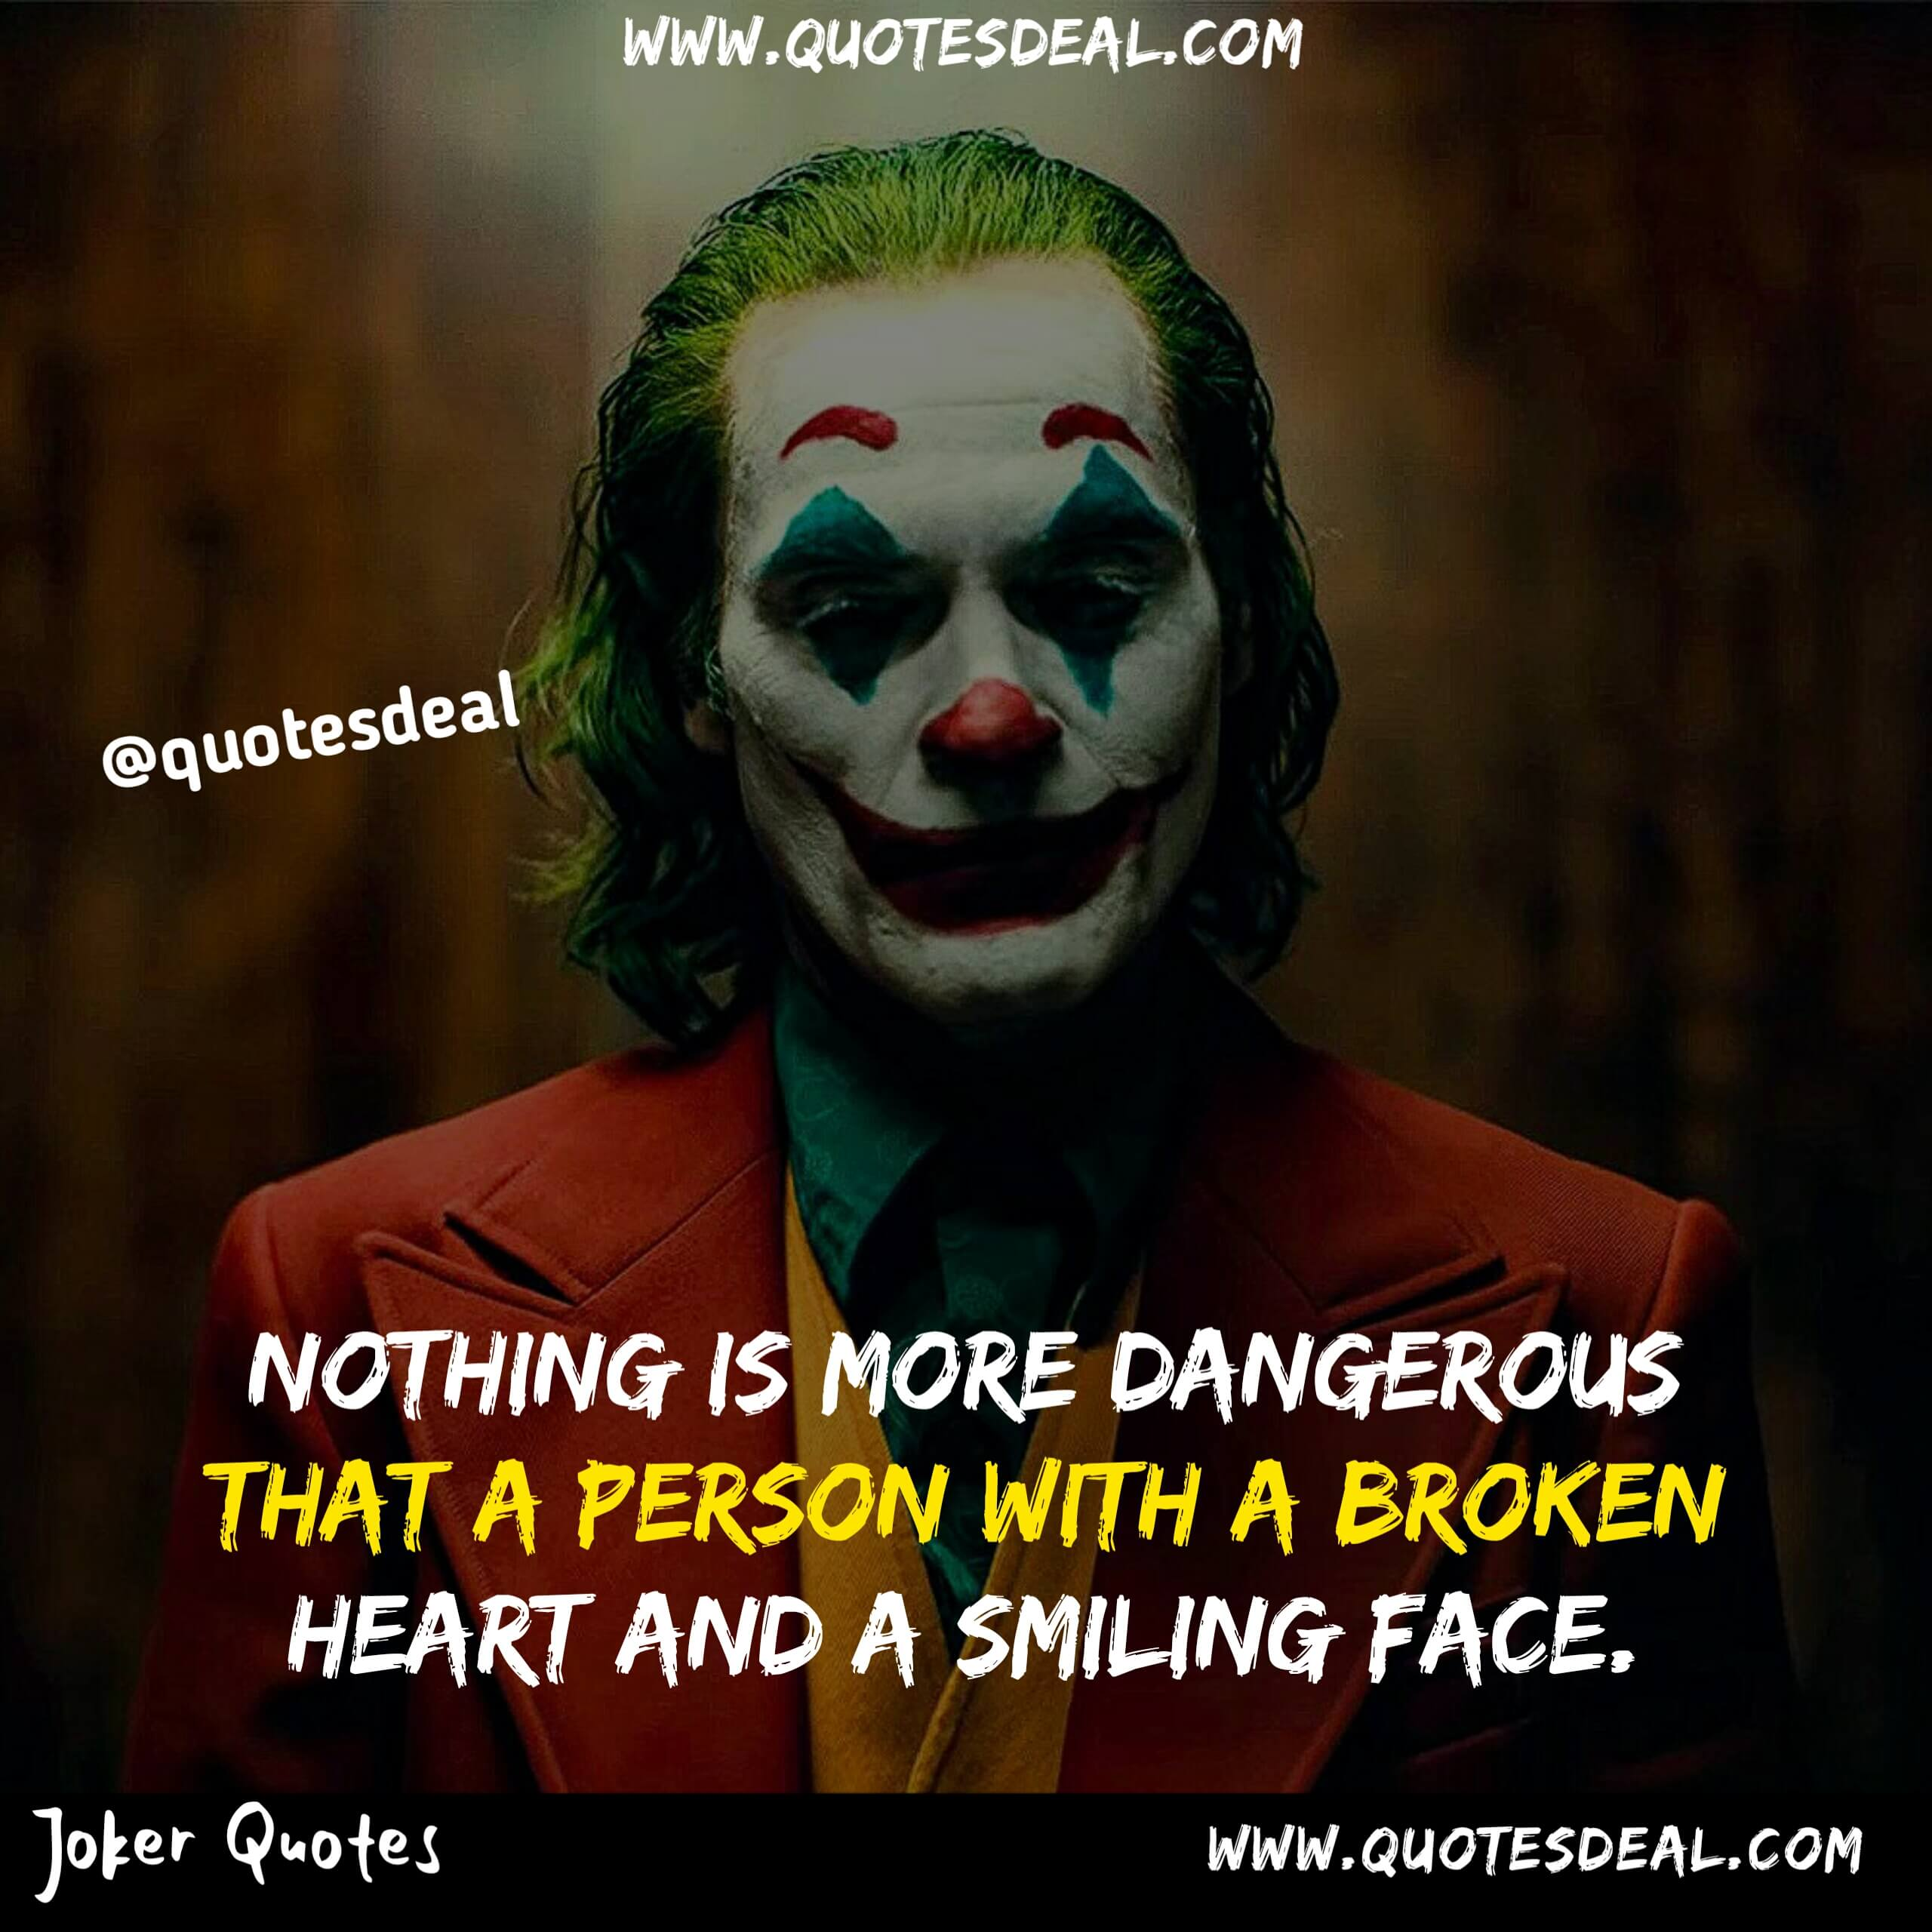 Nothing is more dangerous